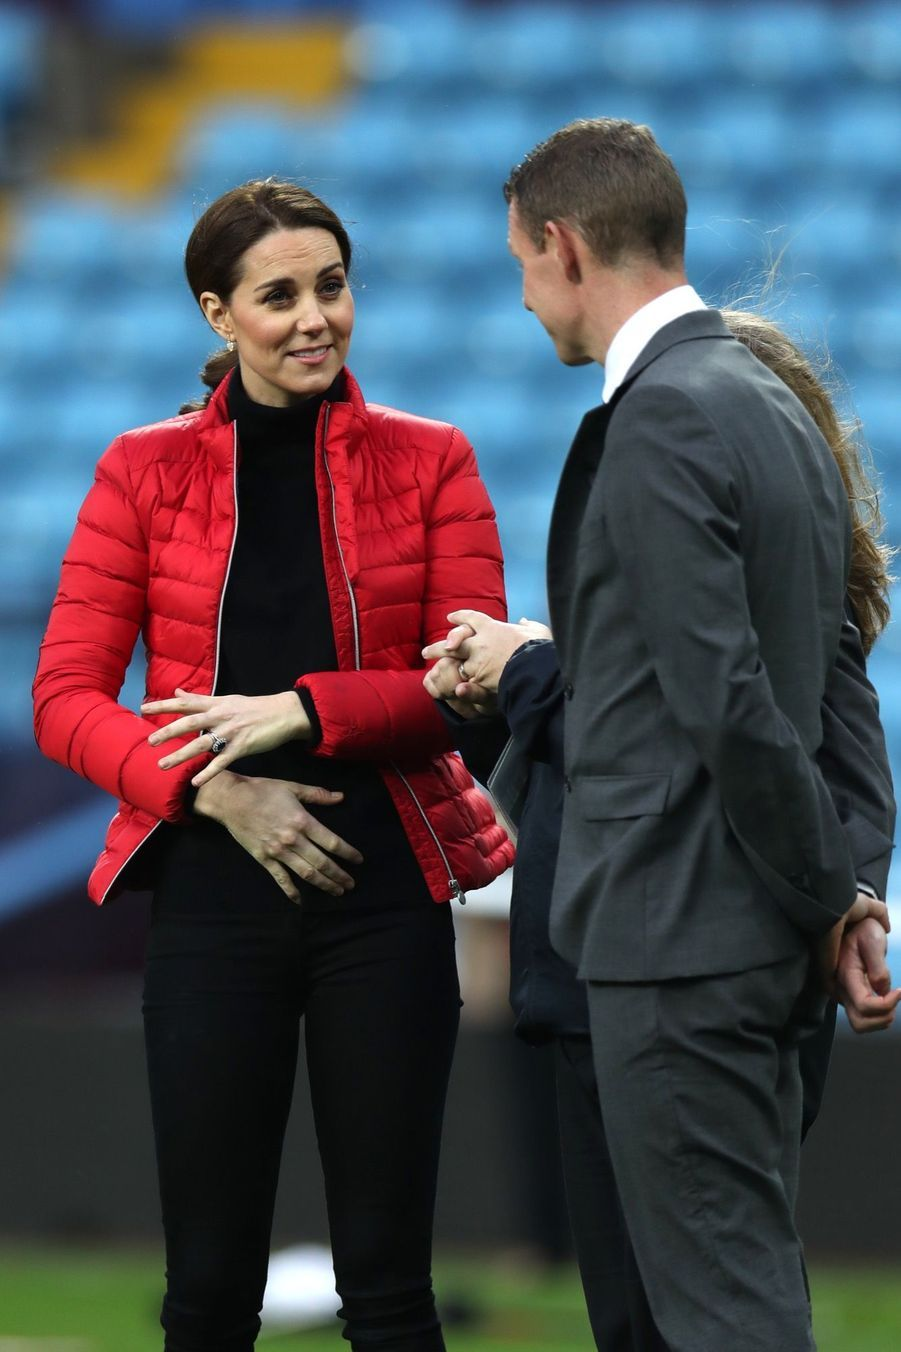 Kate Middleton Et Le Prince William Au Stade Du Club D'Aston Villa 8